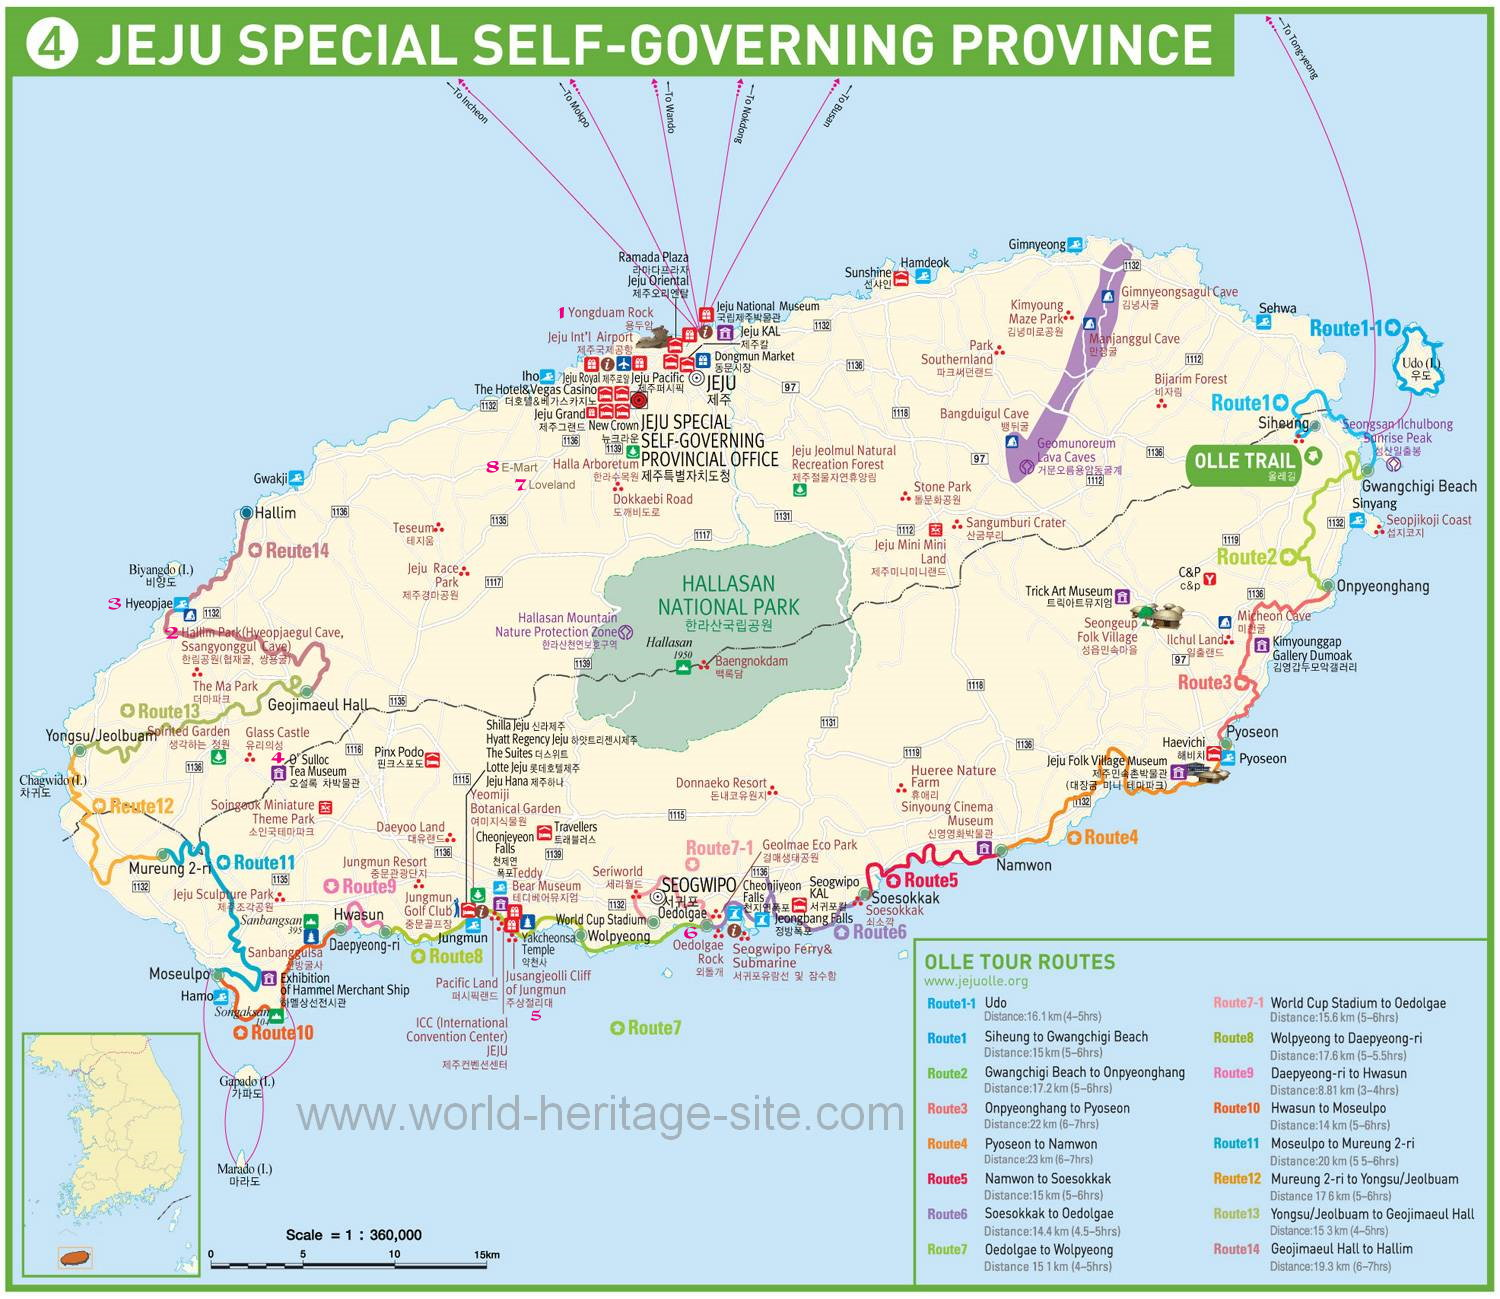 Map of Tourist Attractions around Jeju Island